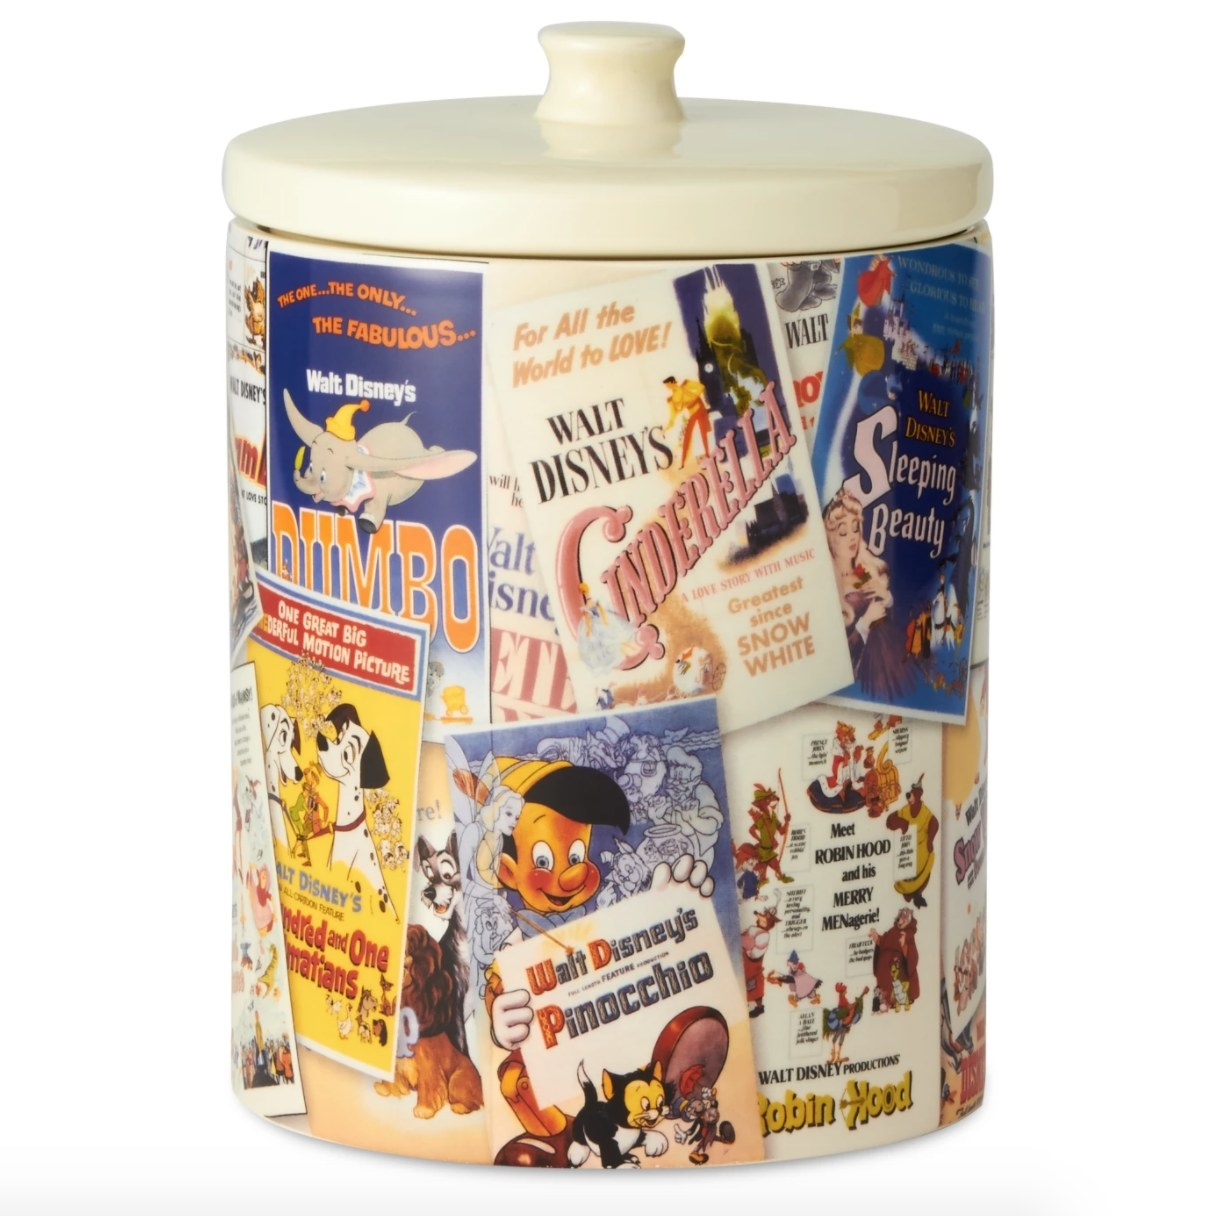 A cookie jar with decorations of classic Disney movie posters